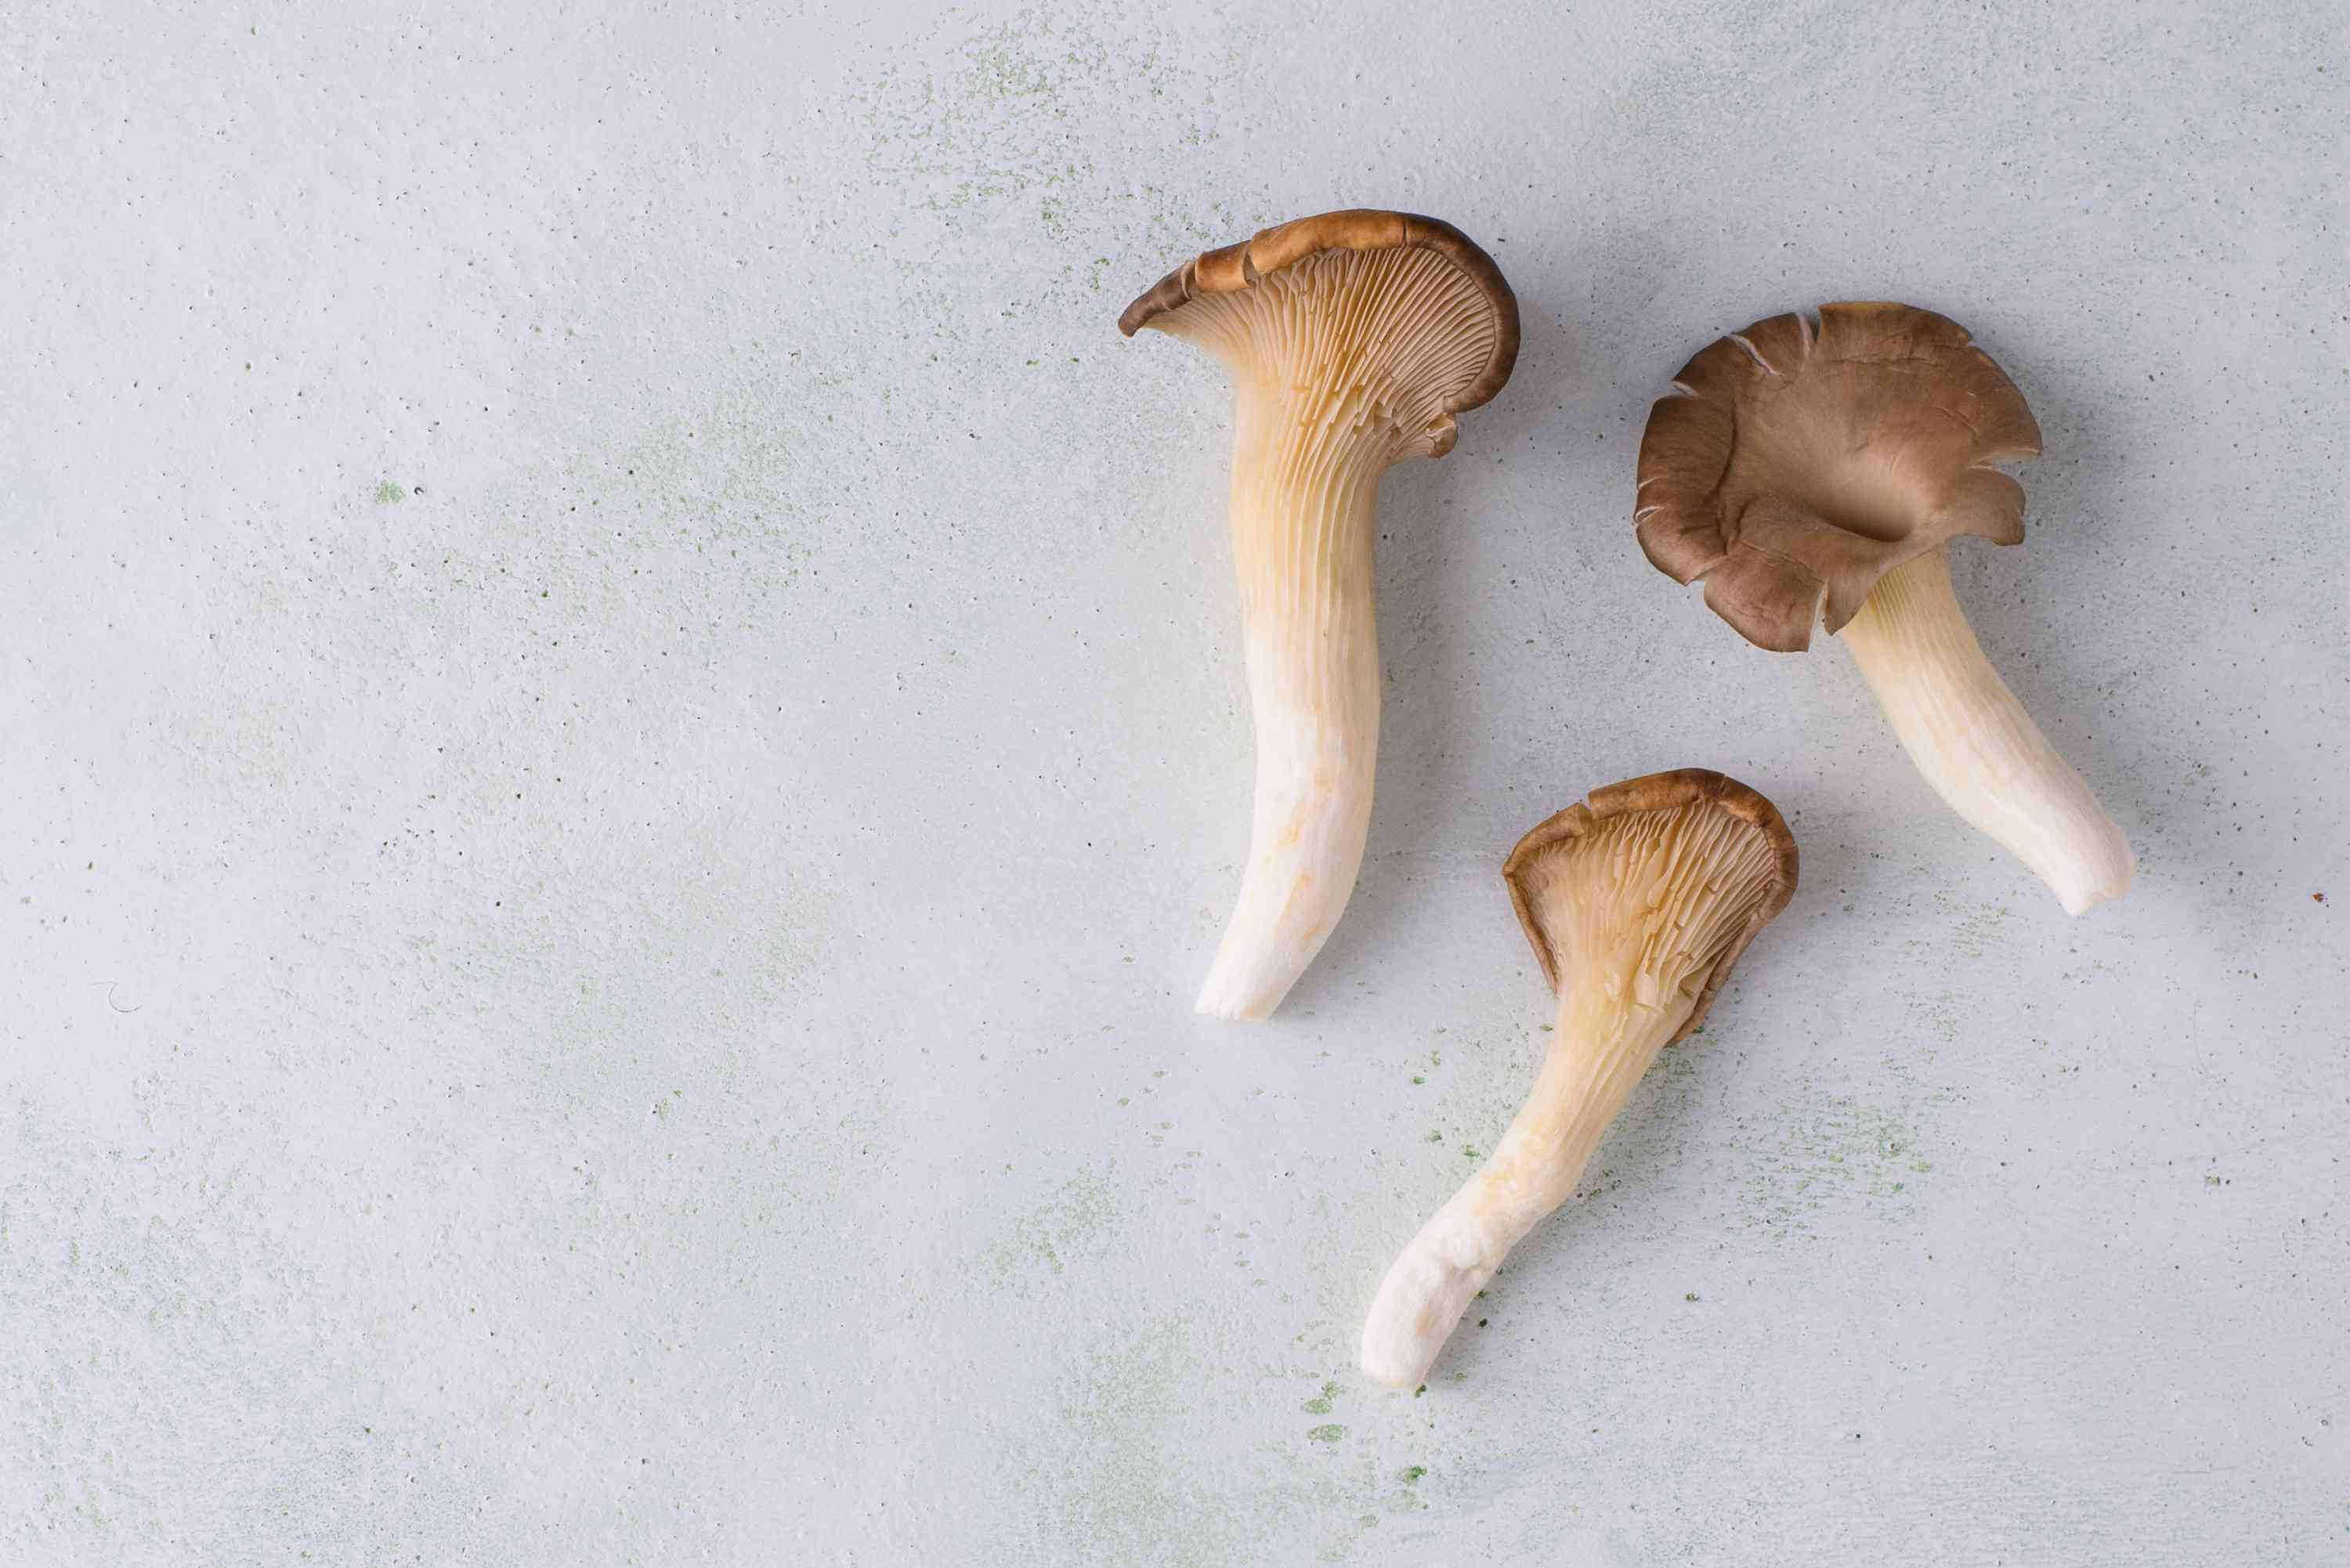 Mushroom Diet: Pros, Cons, and How It Works